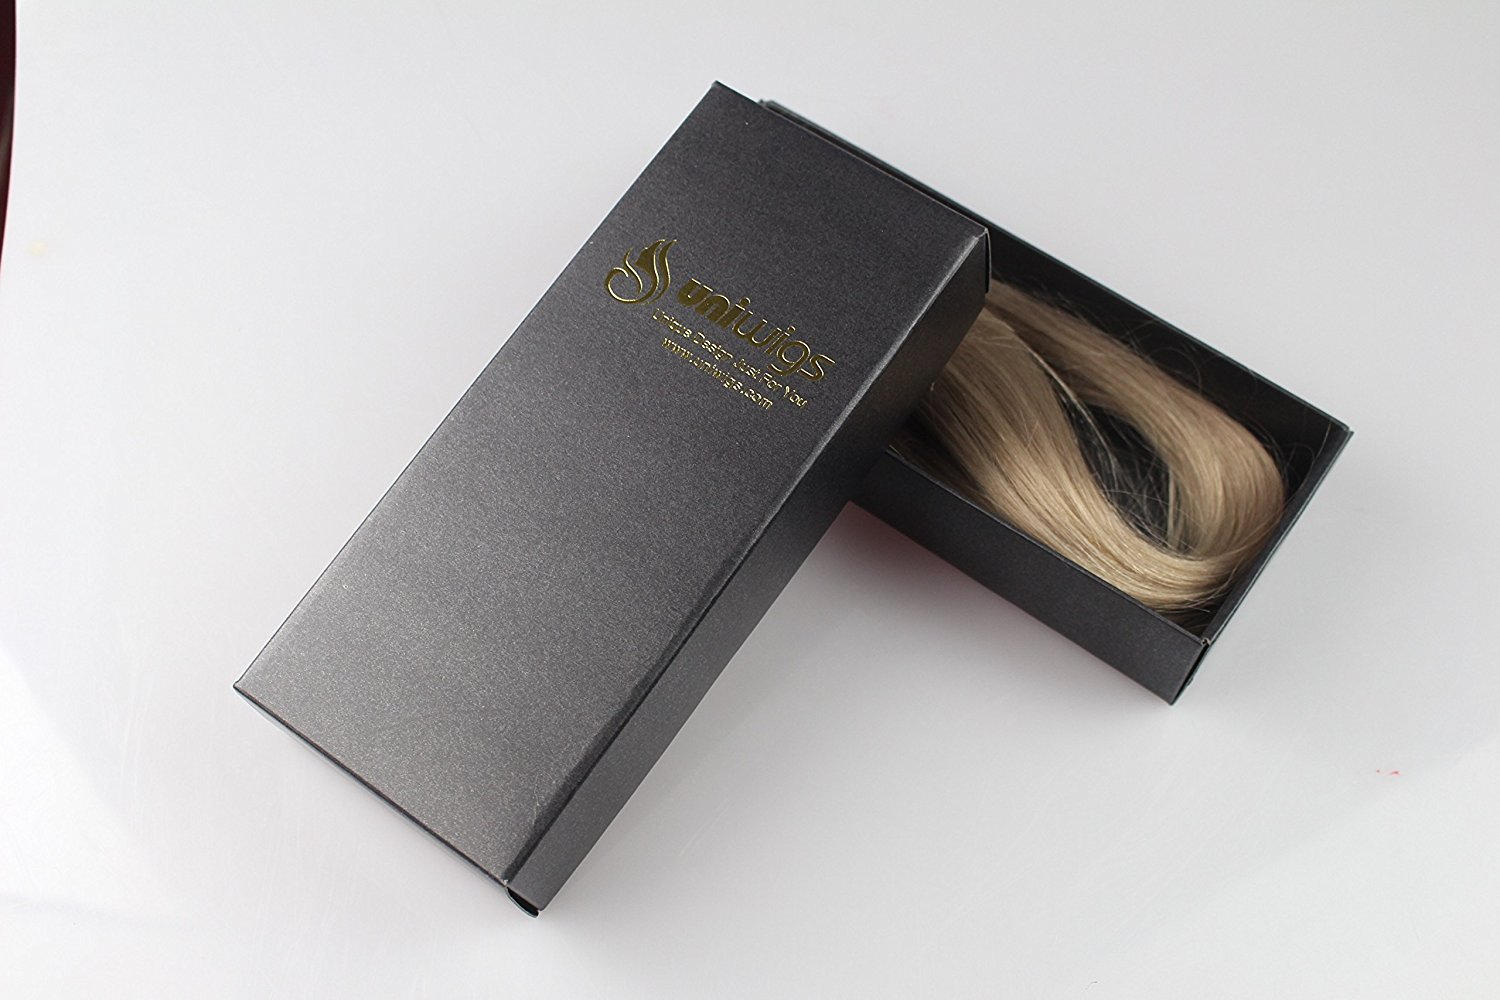 Uniwigs human hair silk skin top parting closure hair topper pieces for women thin hair, hair loss natural hairline (Y-3#)